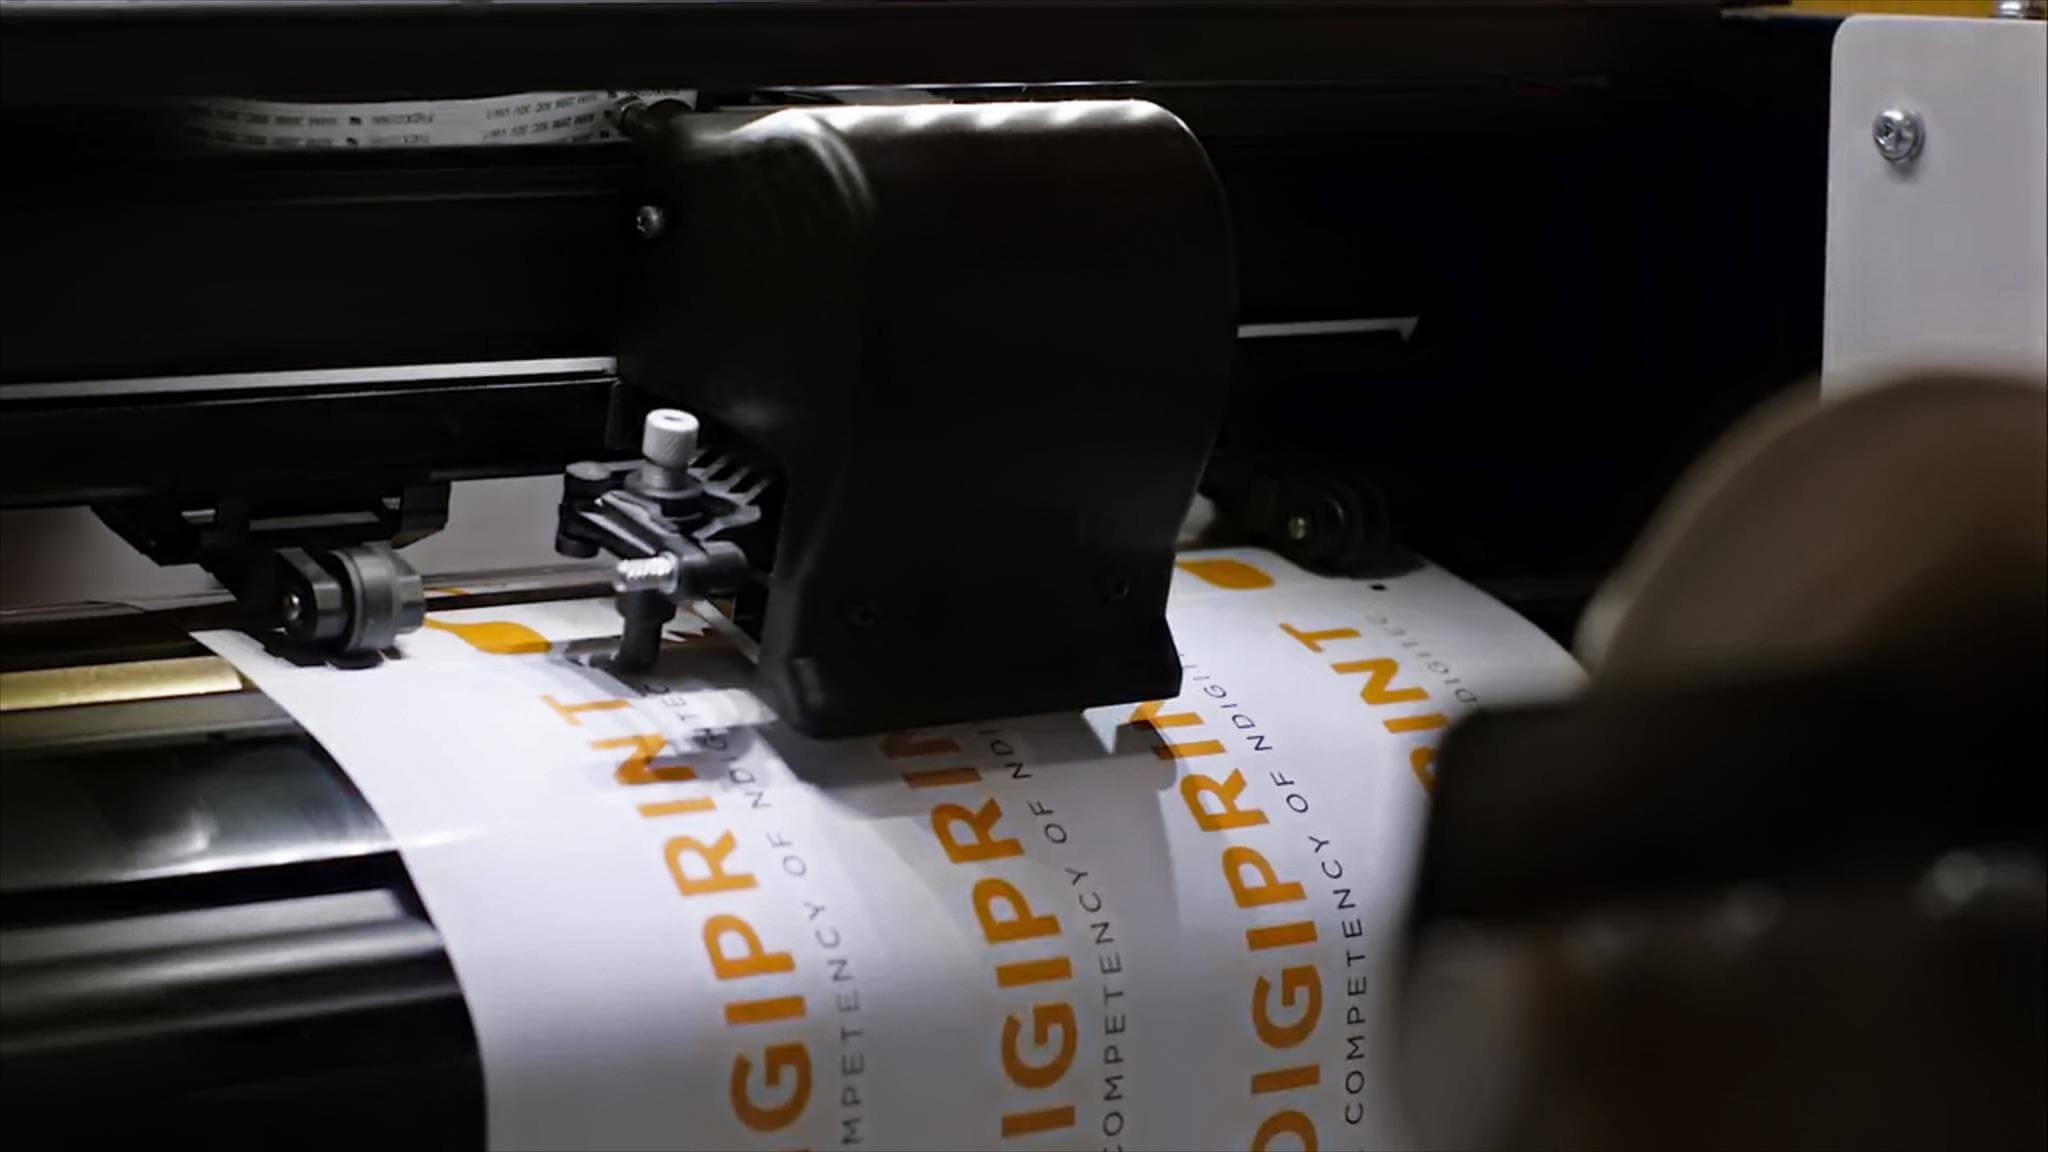 A sneak peek into the NDIGITEC DigiPrint competency